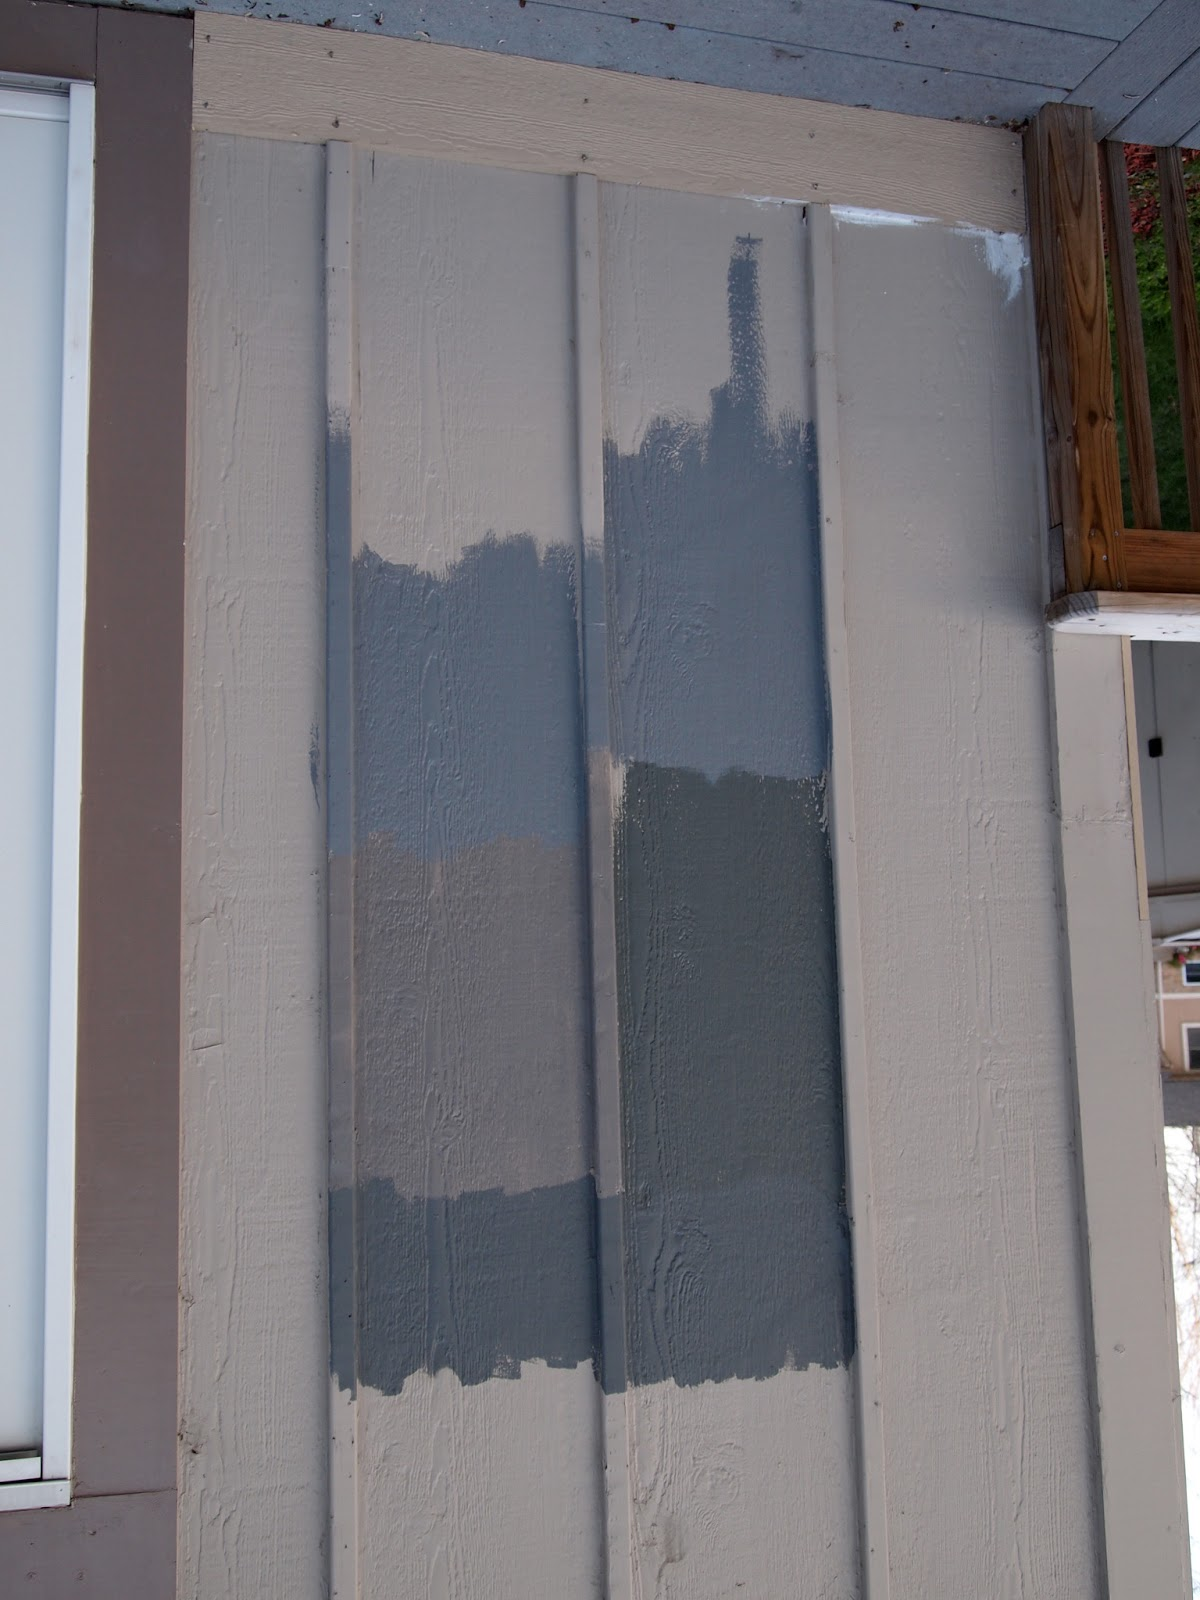 Gauntlet Gray Sherwin Williams Clean Kaylene How To Go Crazy Choosing Gray As Your